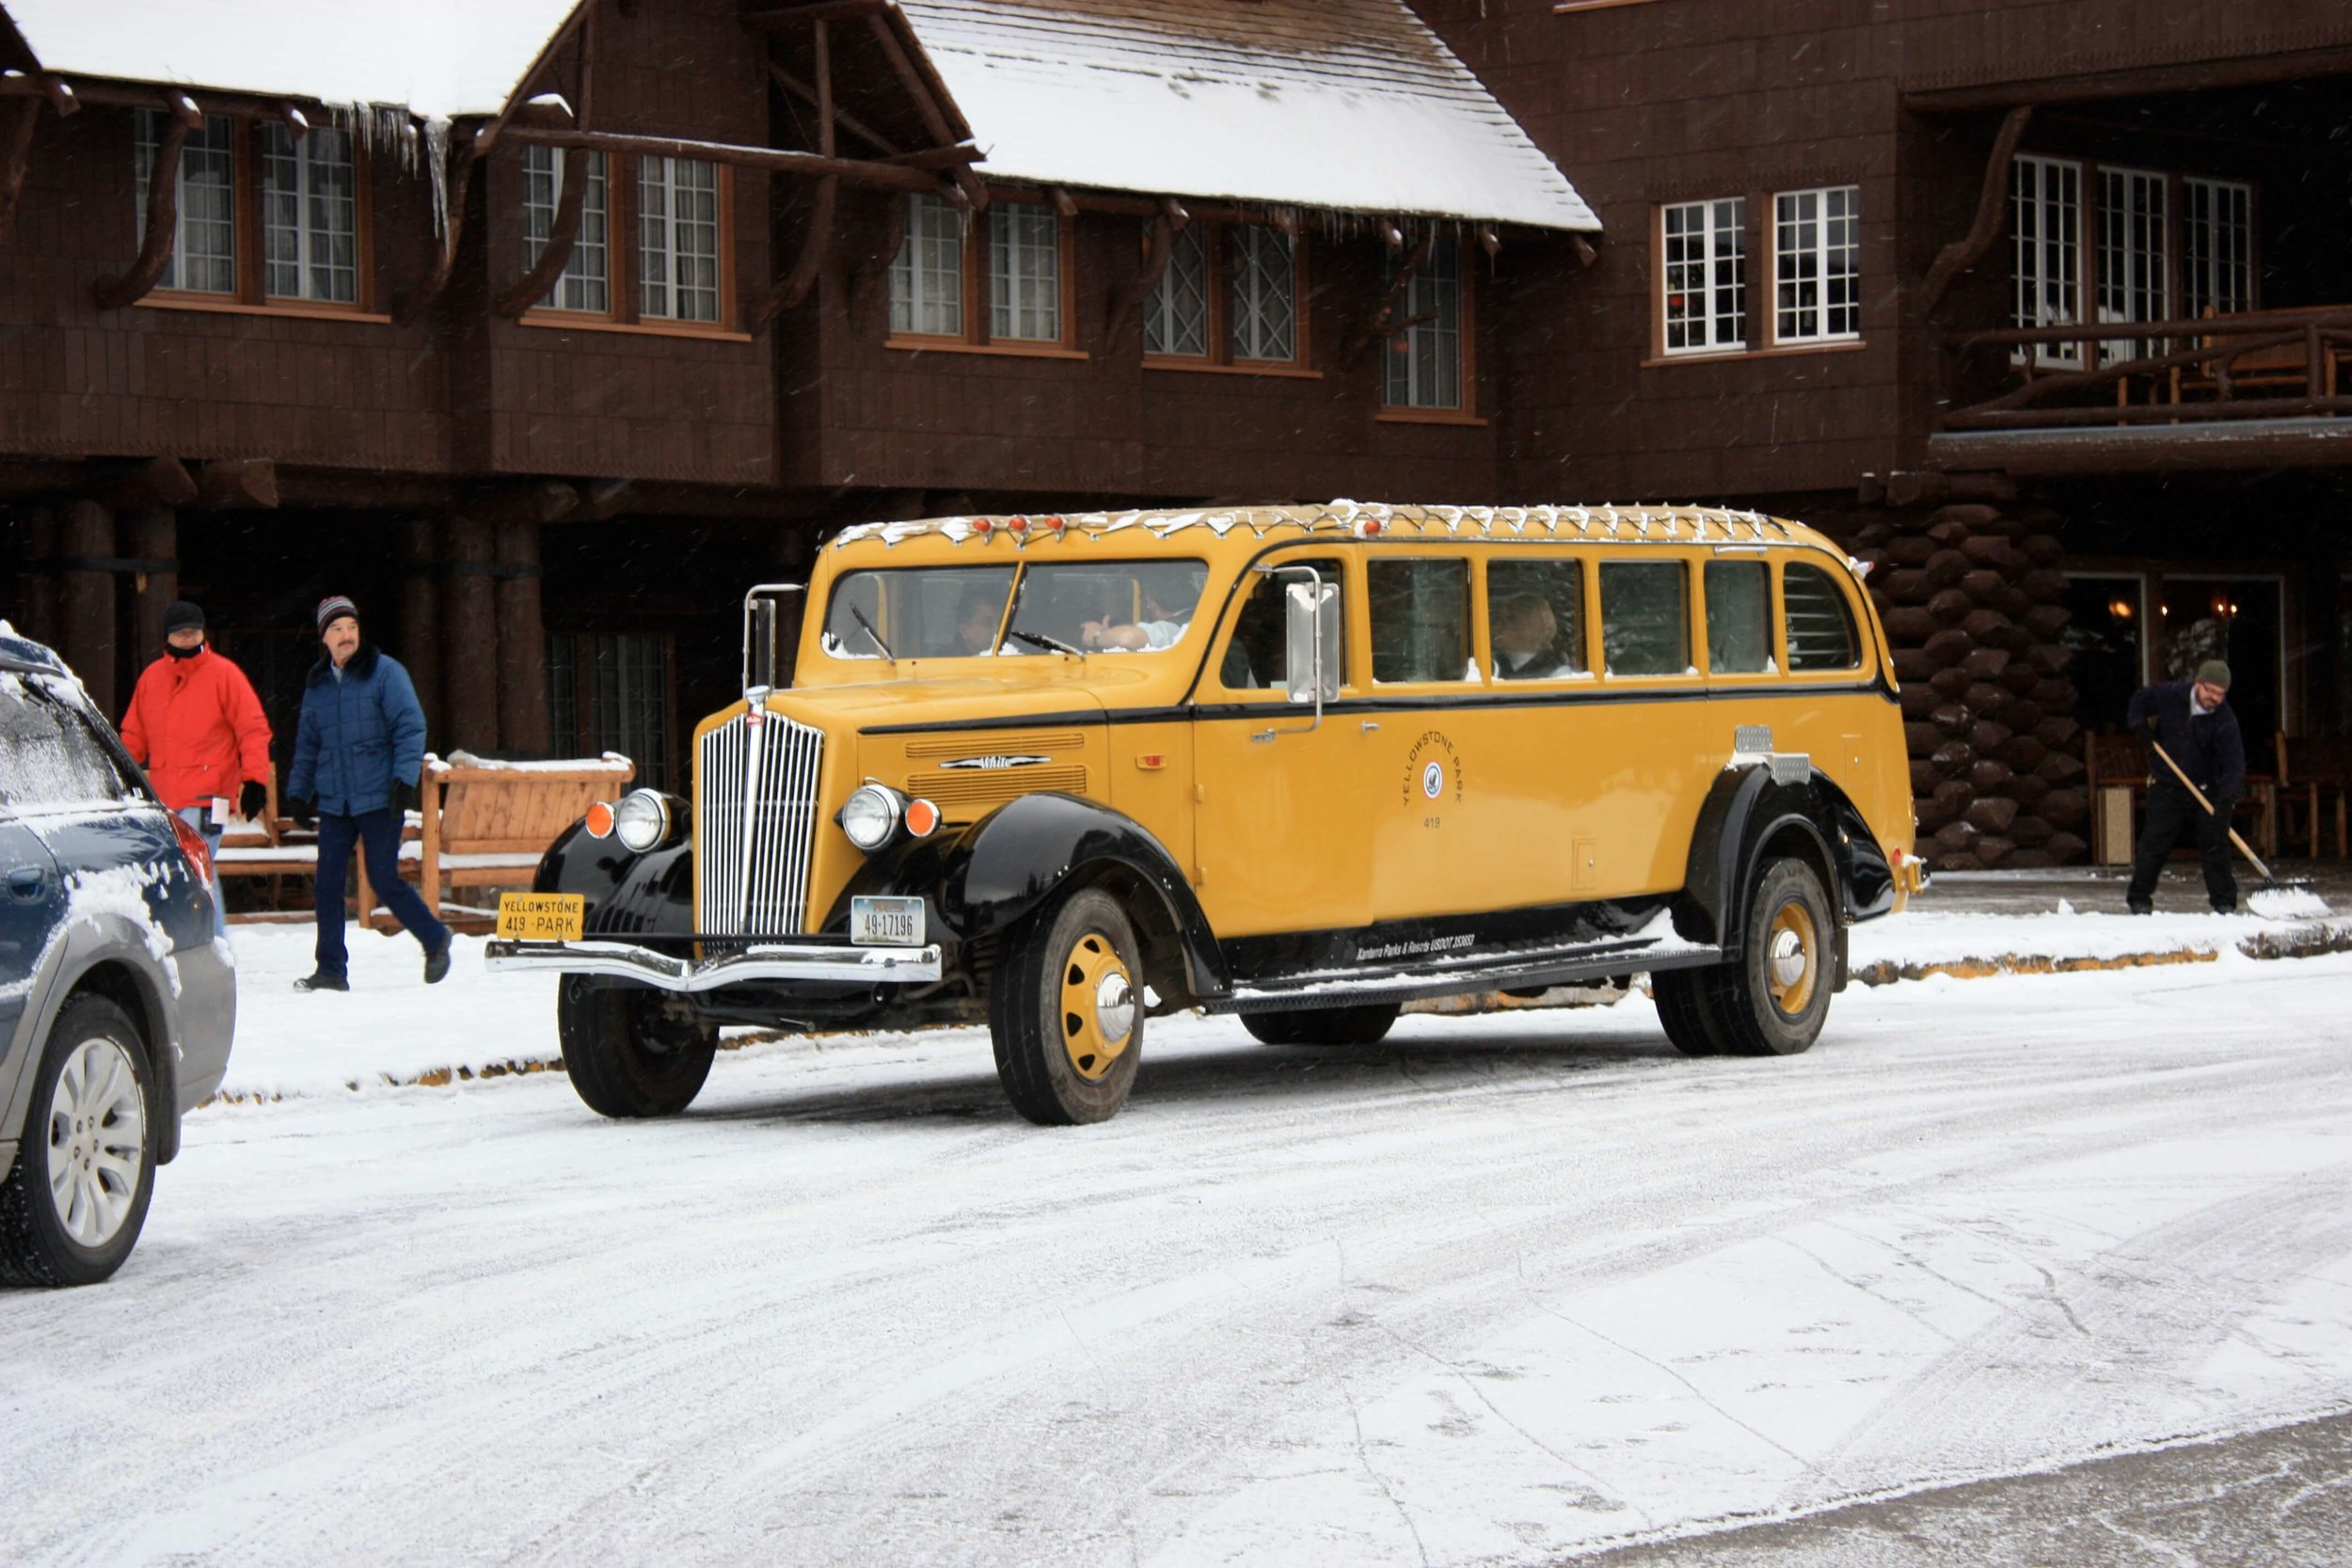 One of Yellowstone's historic Jammers transporting guests around the park.